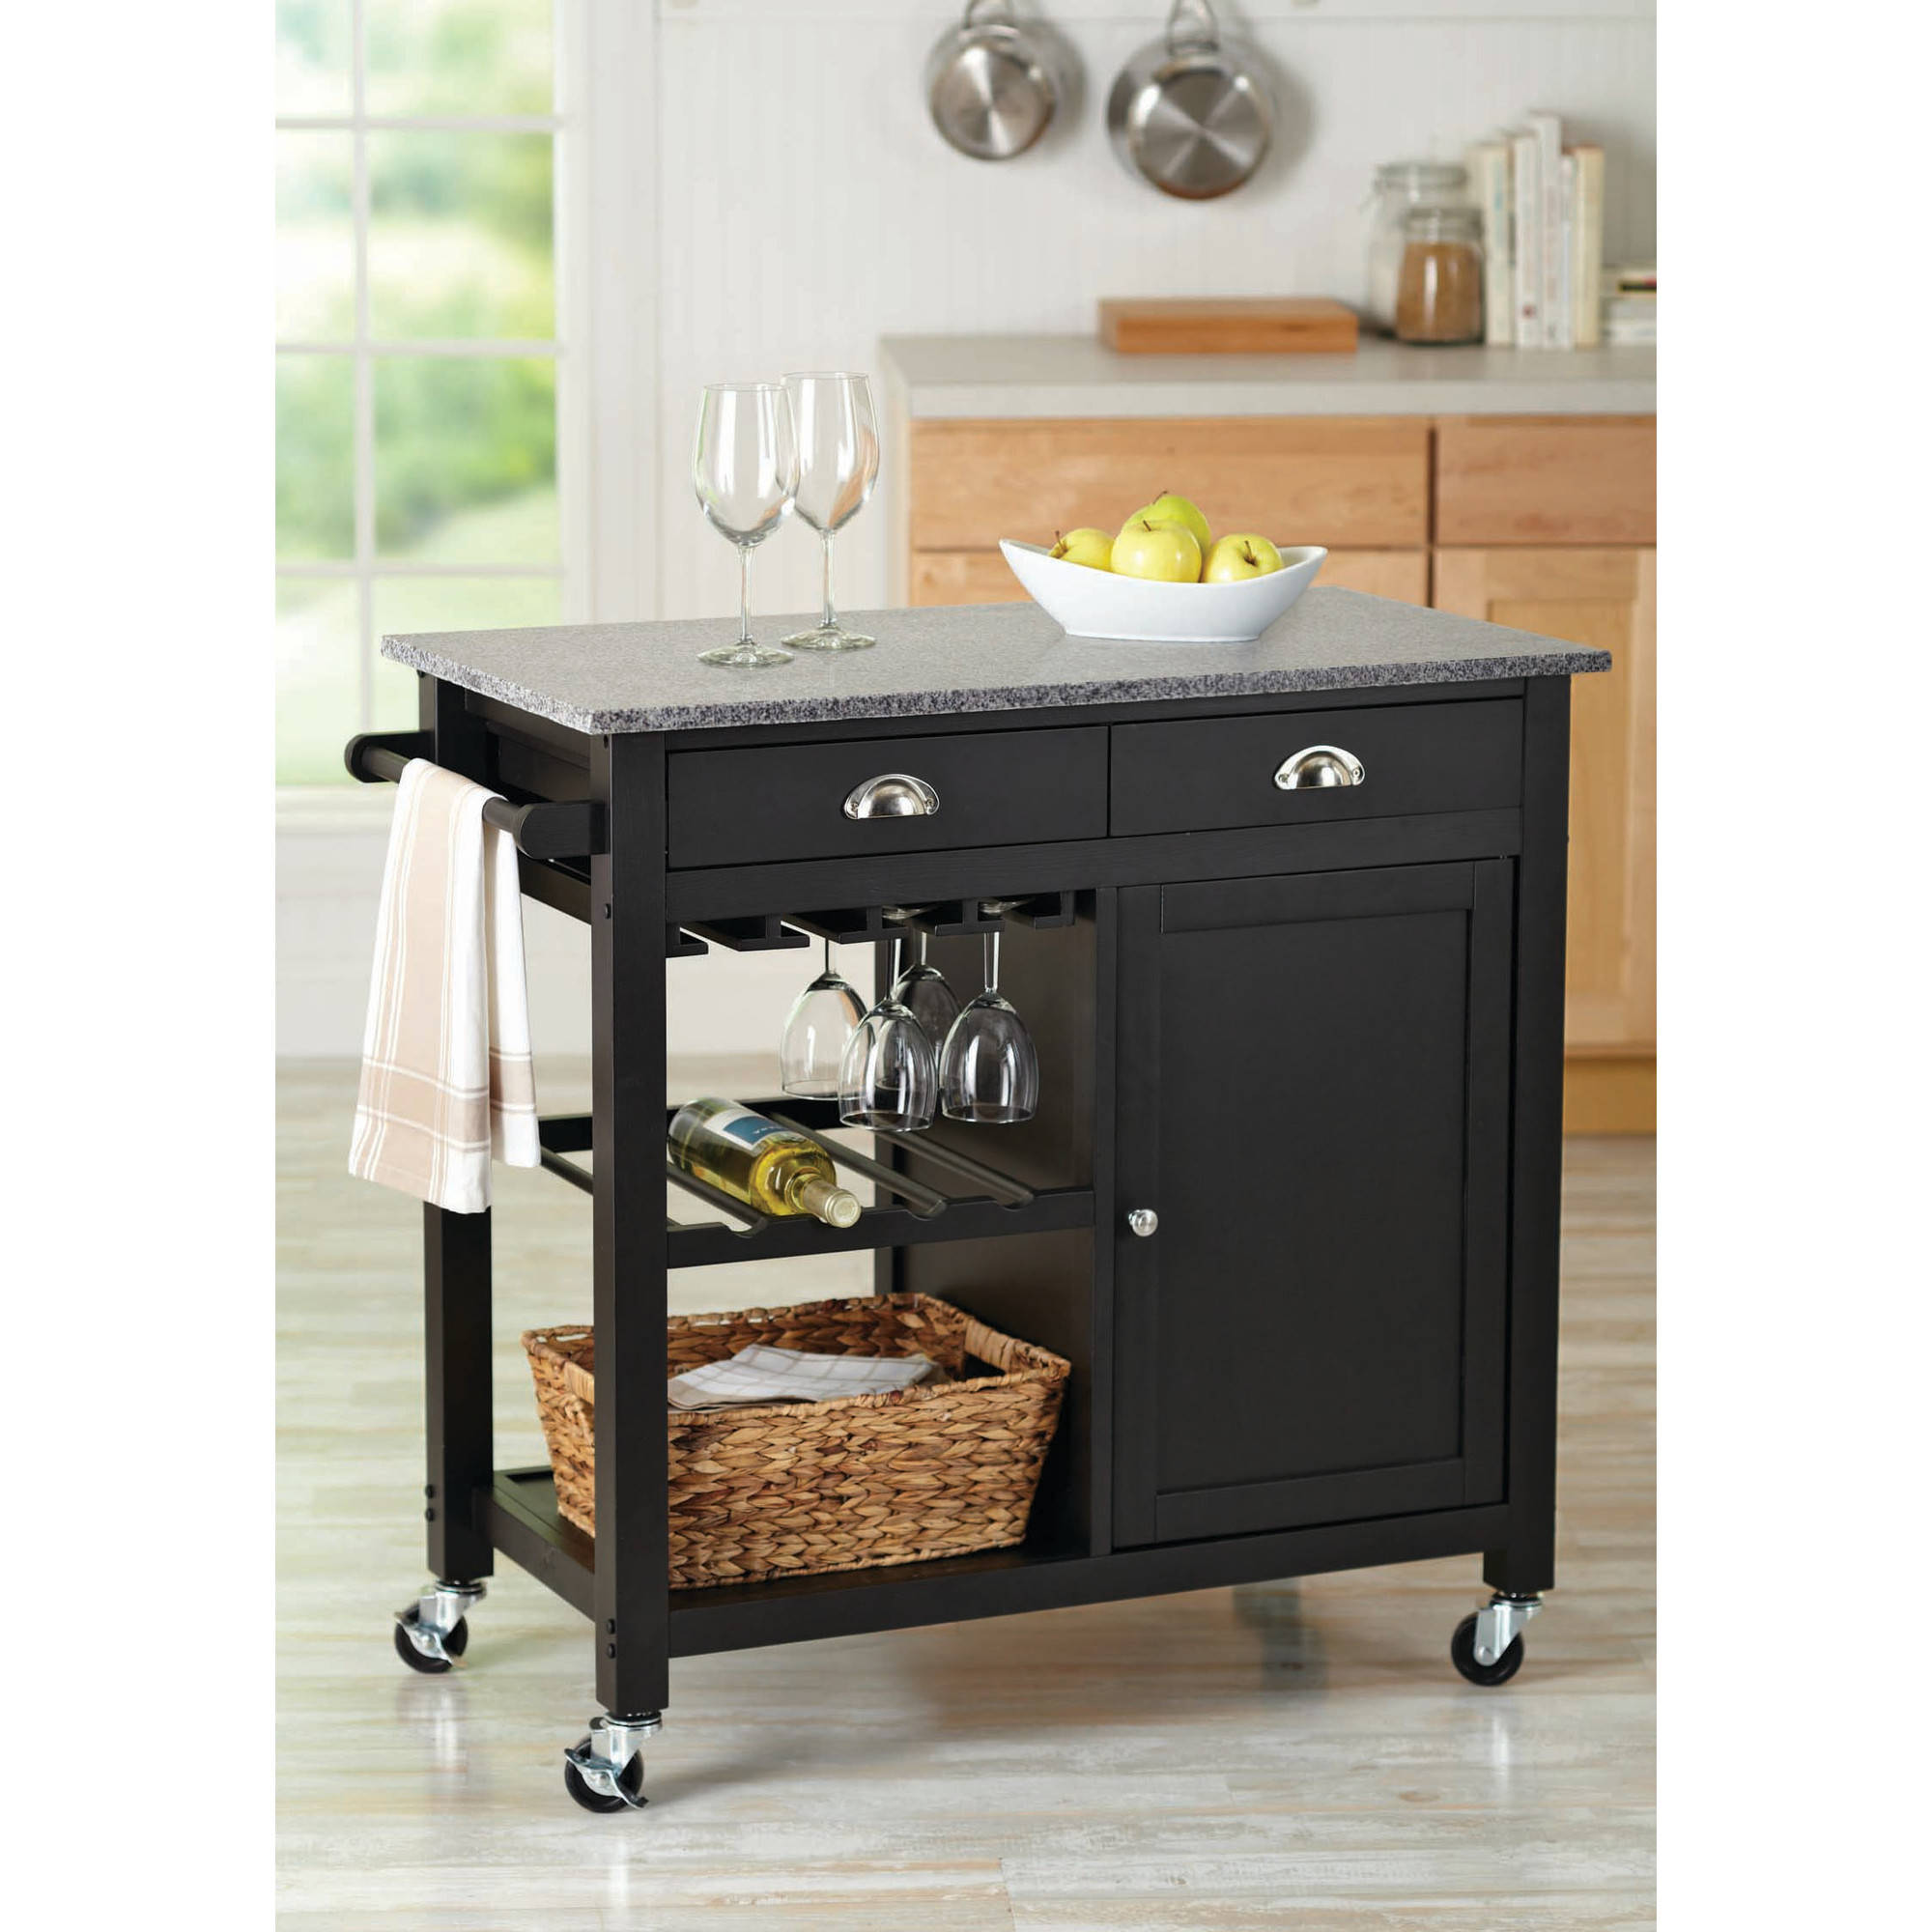 Better Homes And Gardens Deluxe Kitchen Cartisland Black Walmartcom - Kitchen islands at walmart